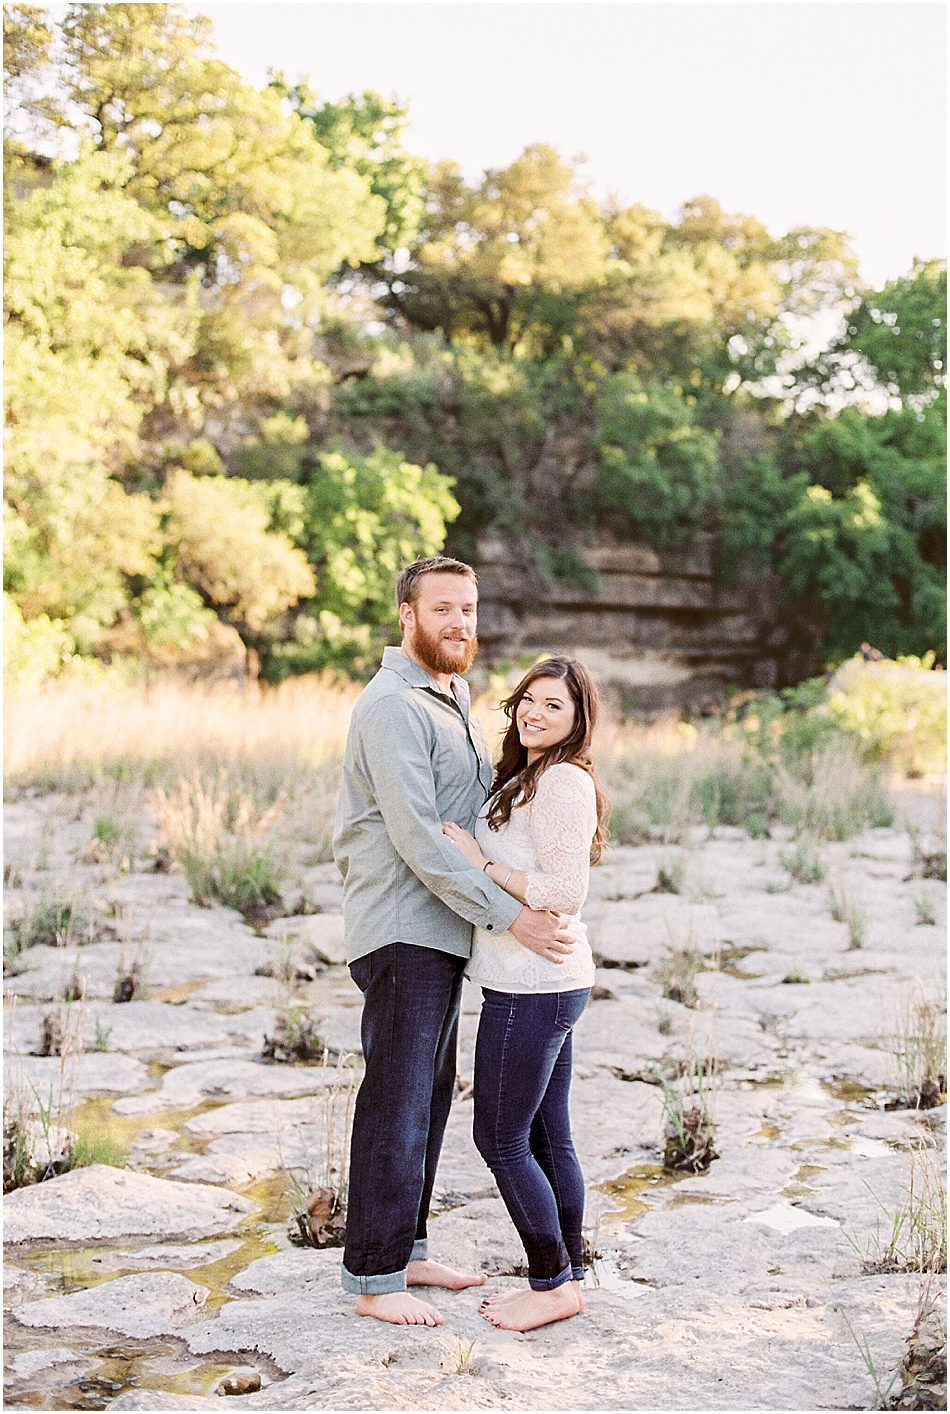 Brooke + Nick | Fine Art Creek Side Engagement | Film | Emilie Anne Photography-2.jpg